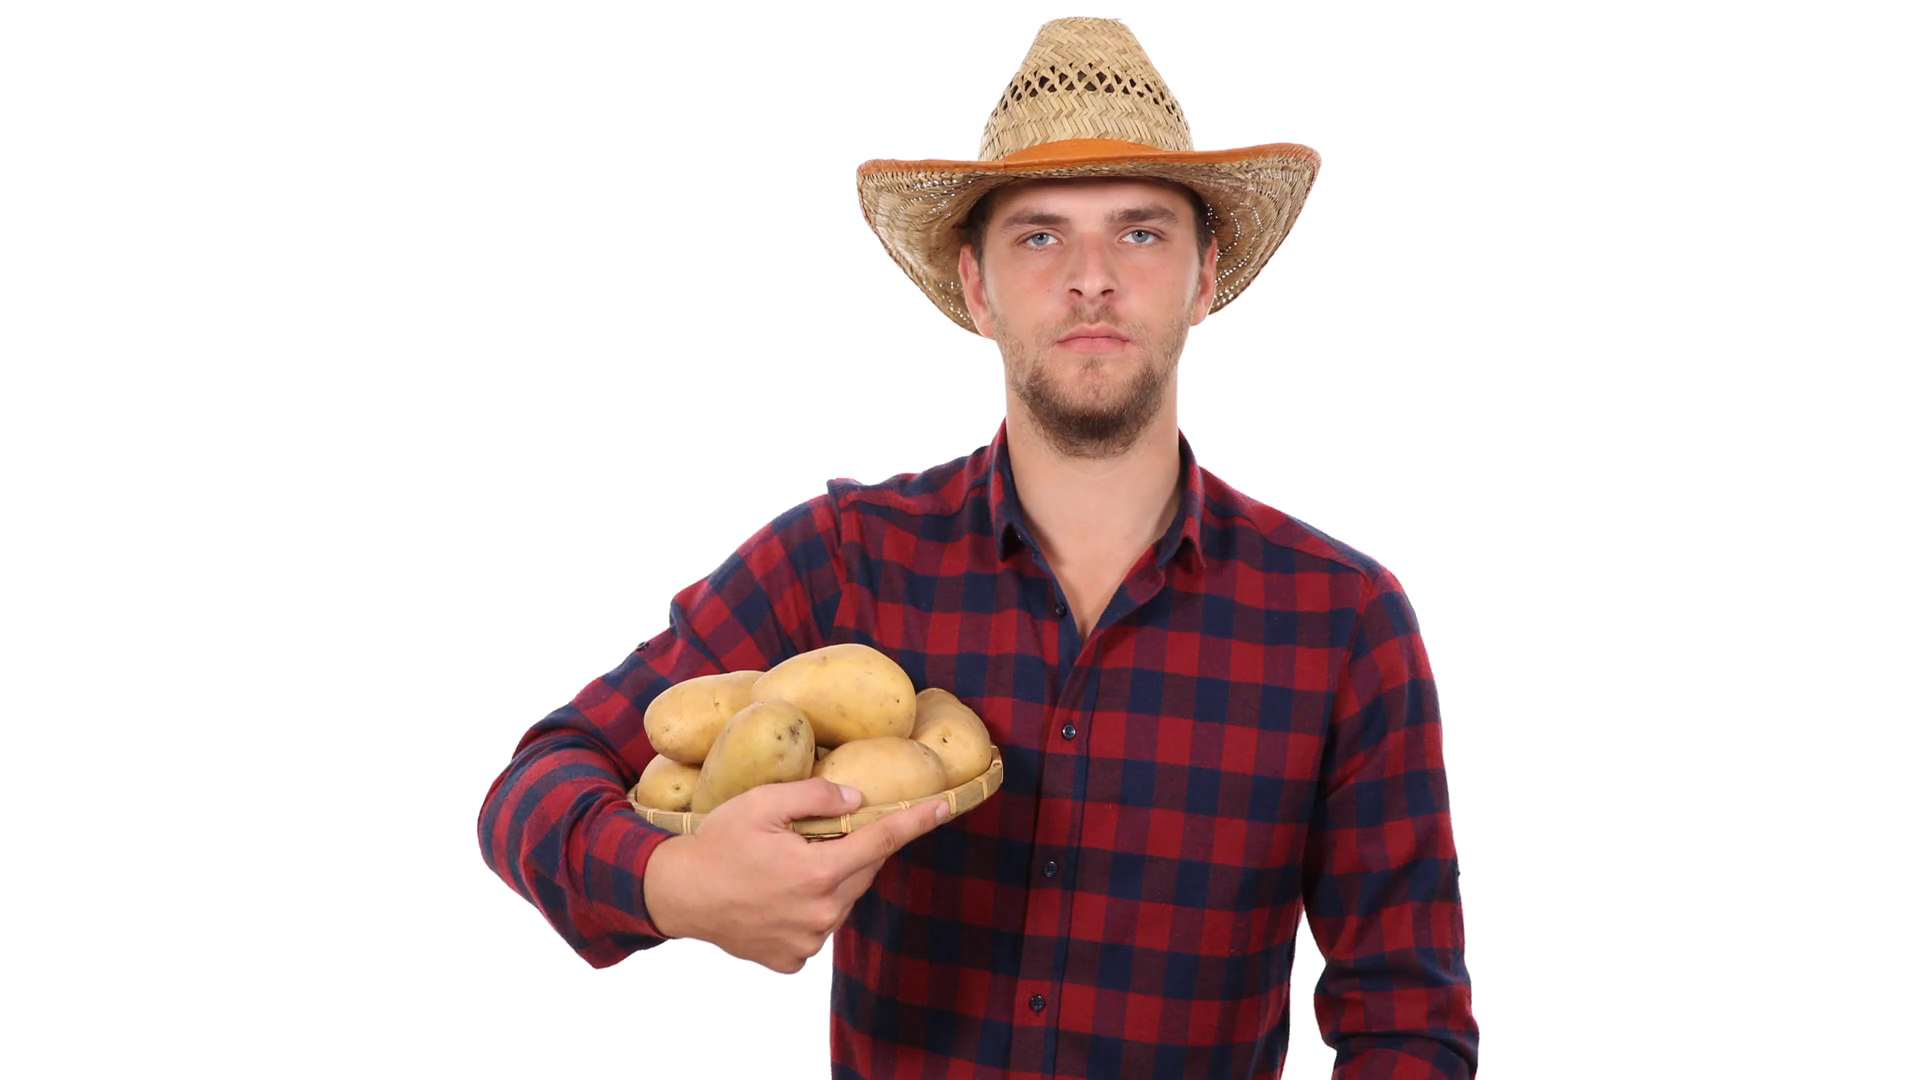 Png farmer. Free downlo images pngio